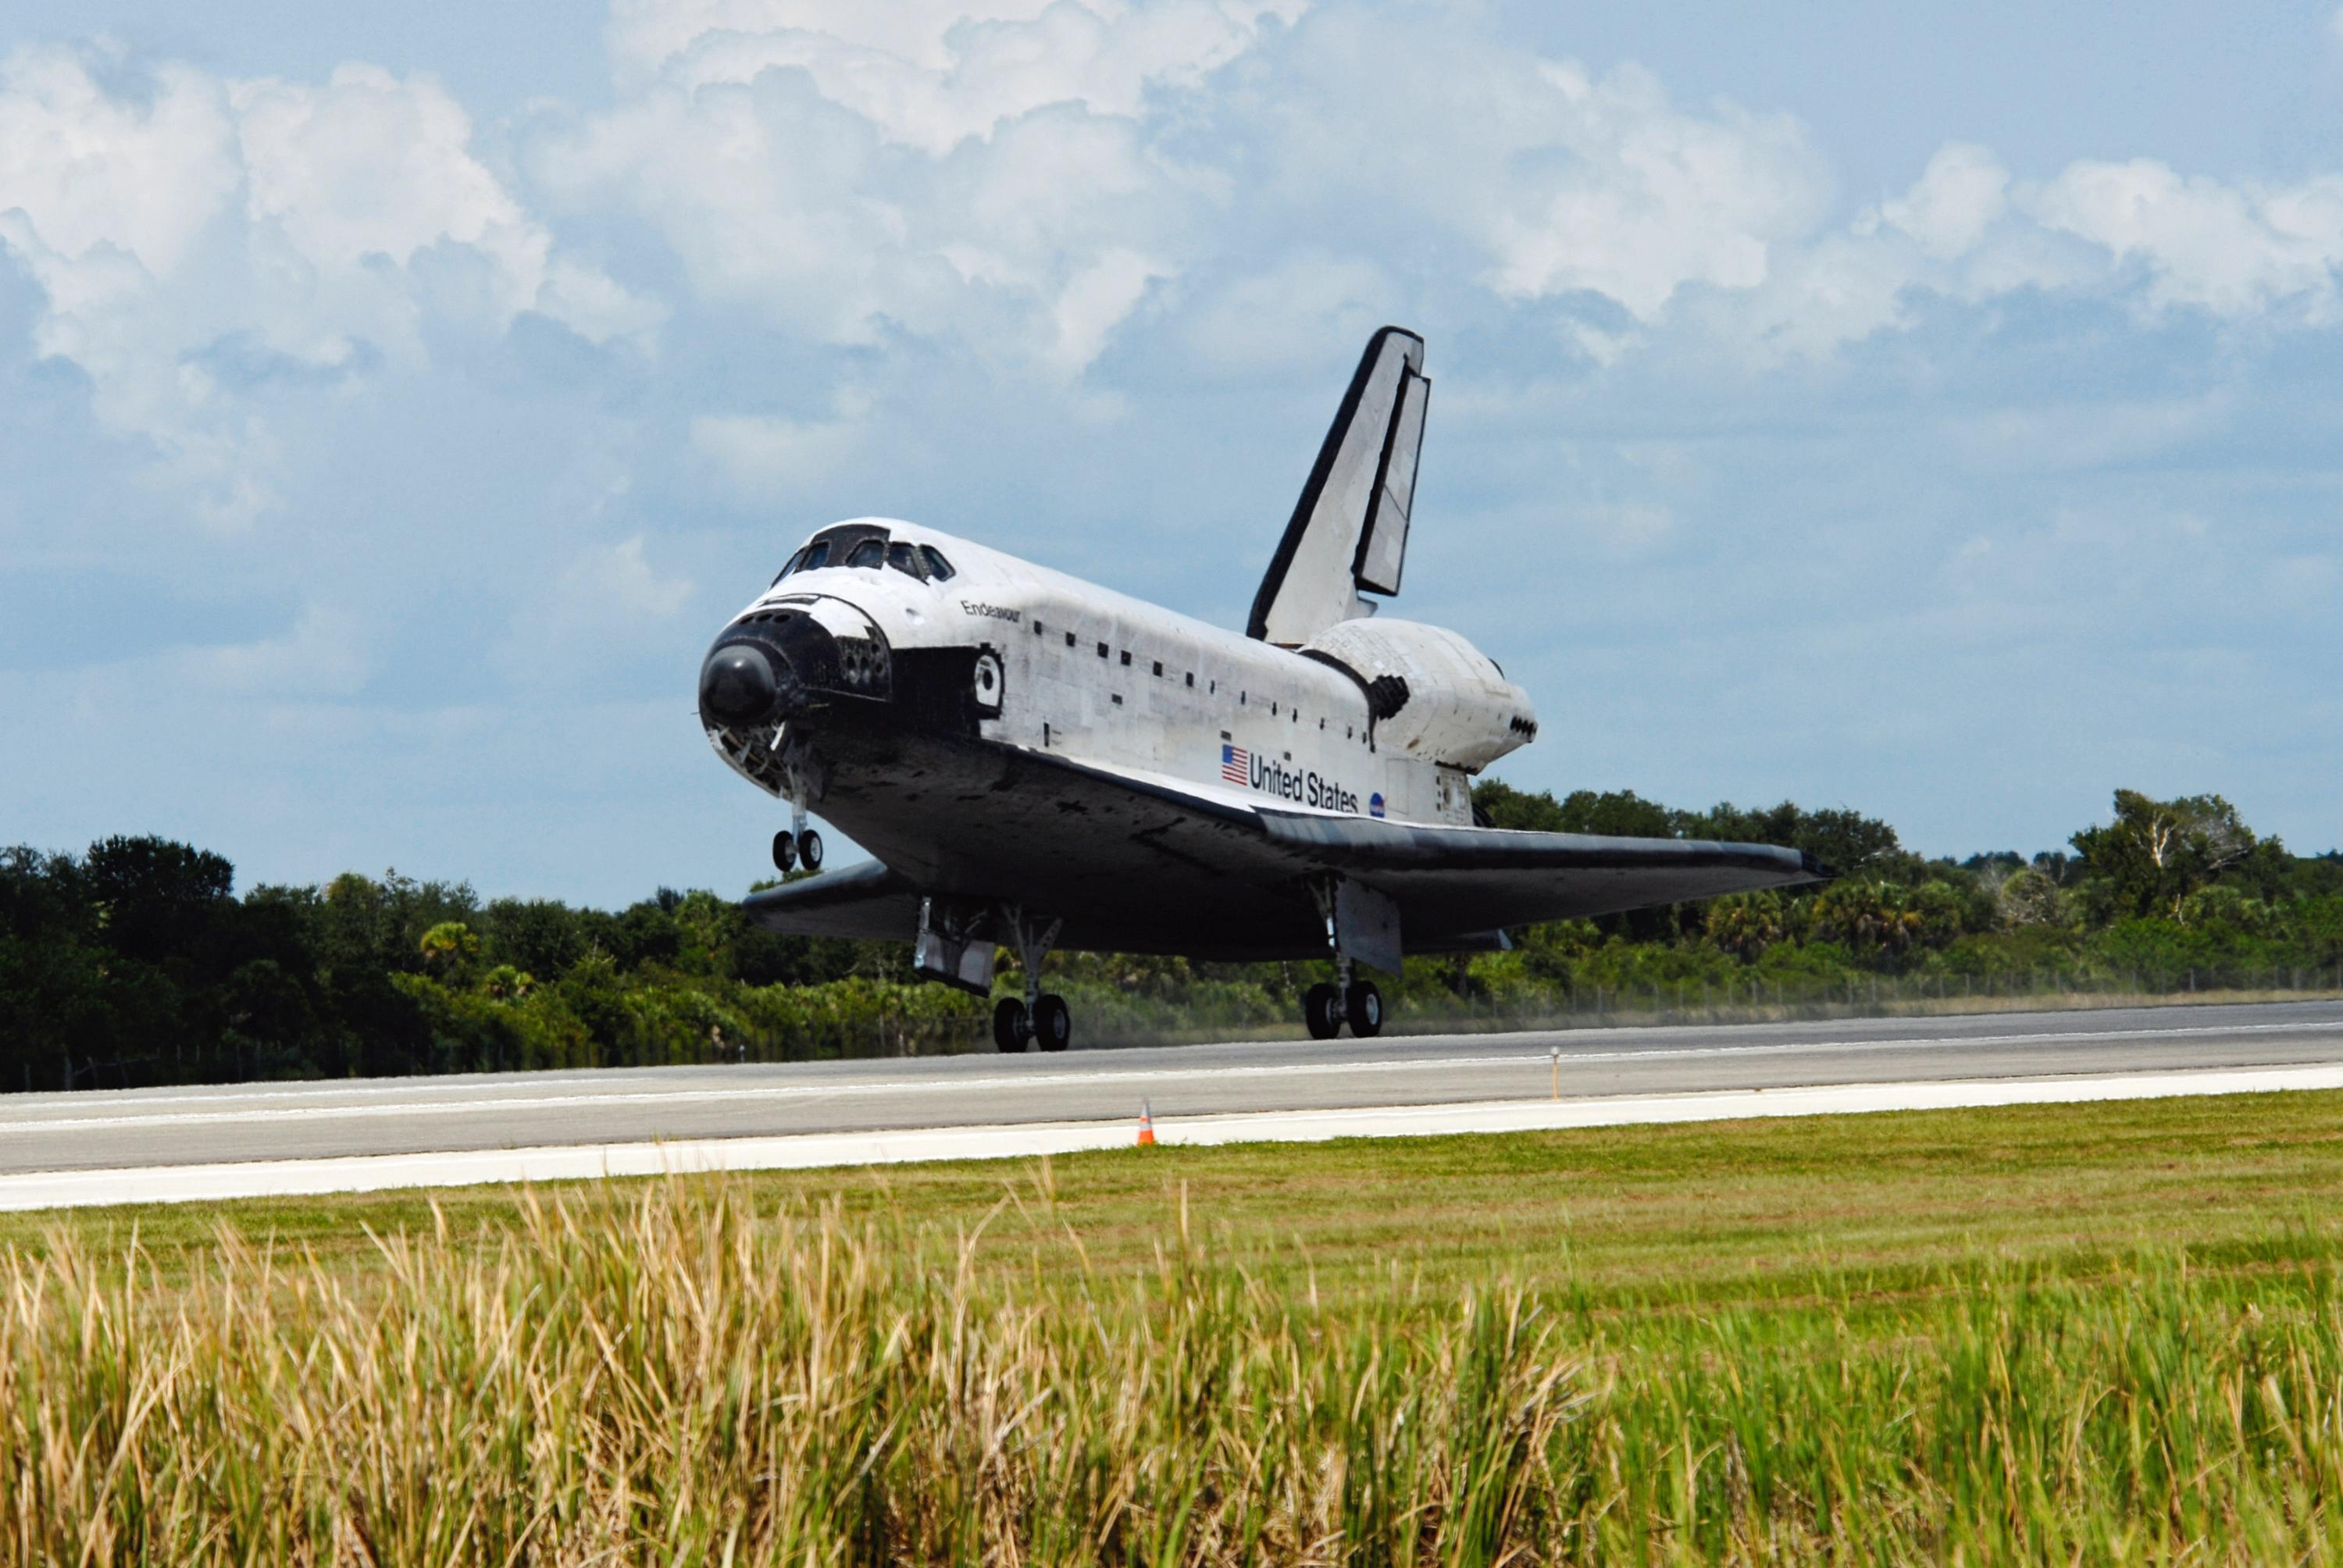 space shuttle landing in europe - photo #8